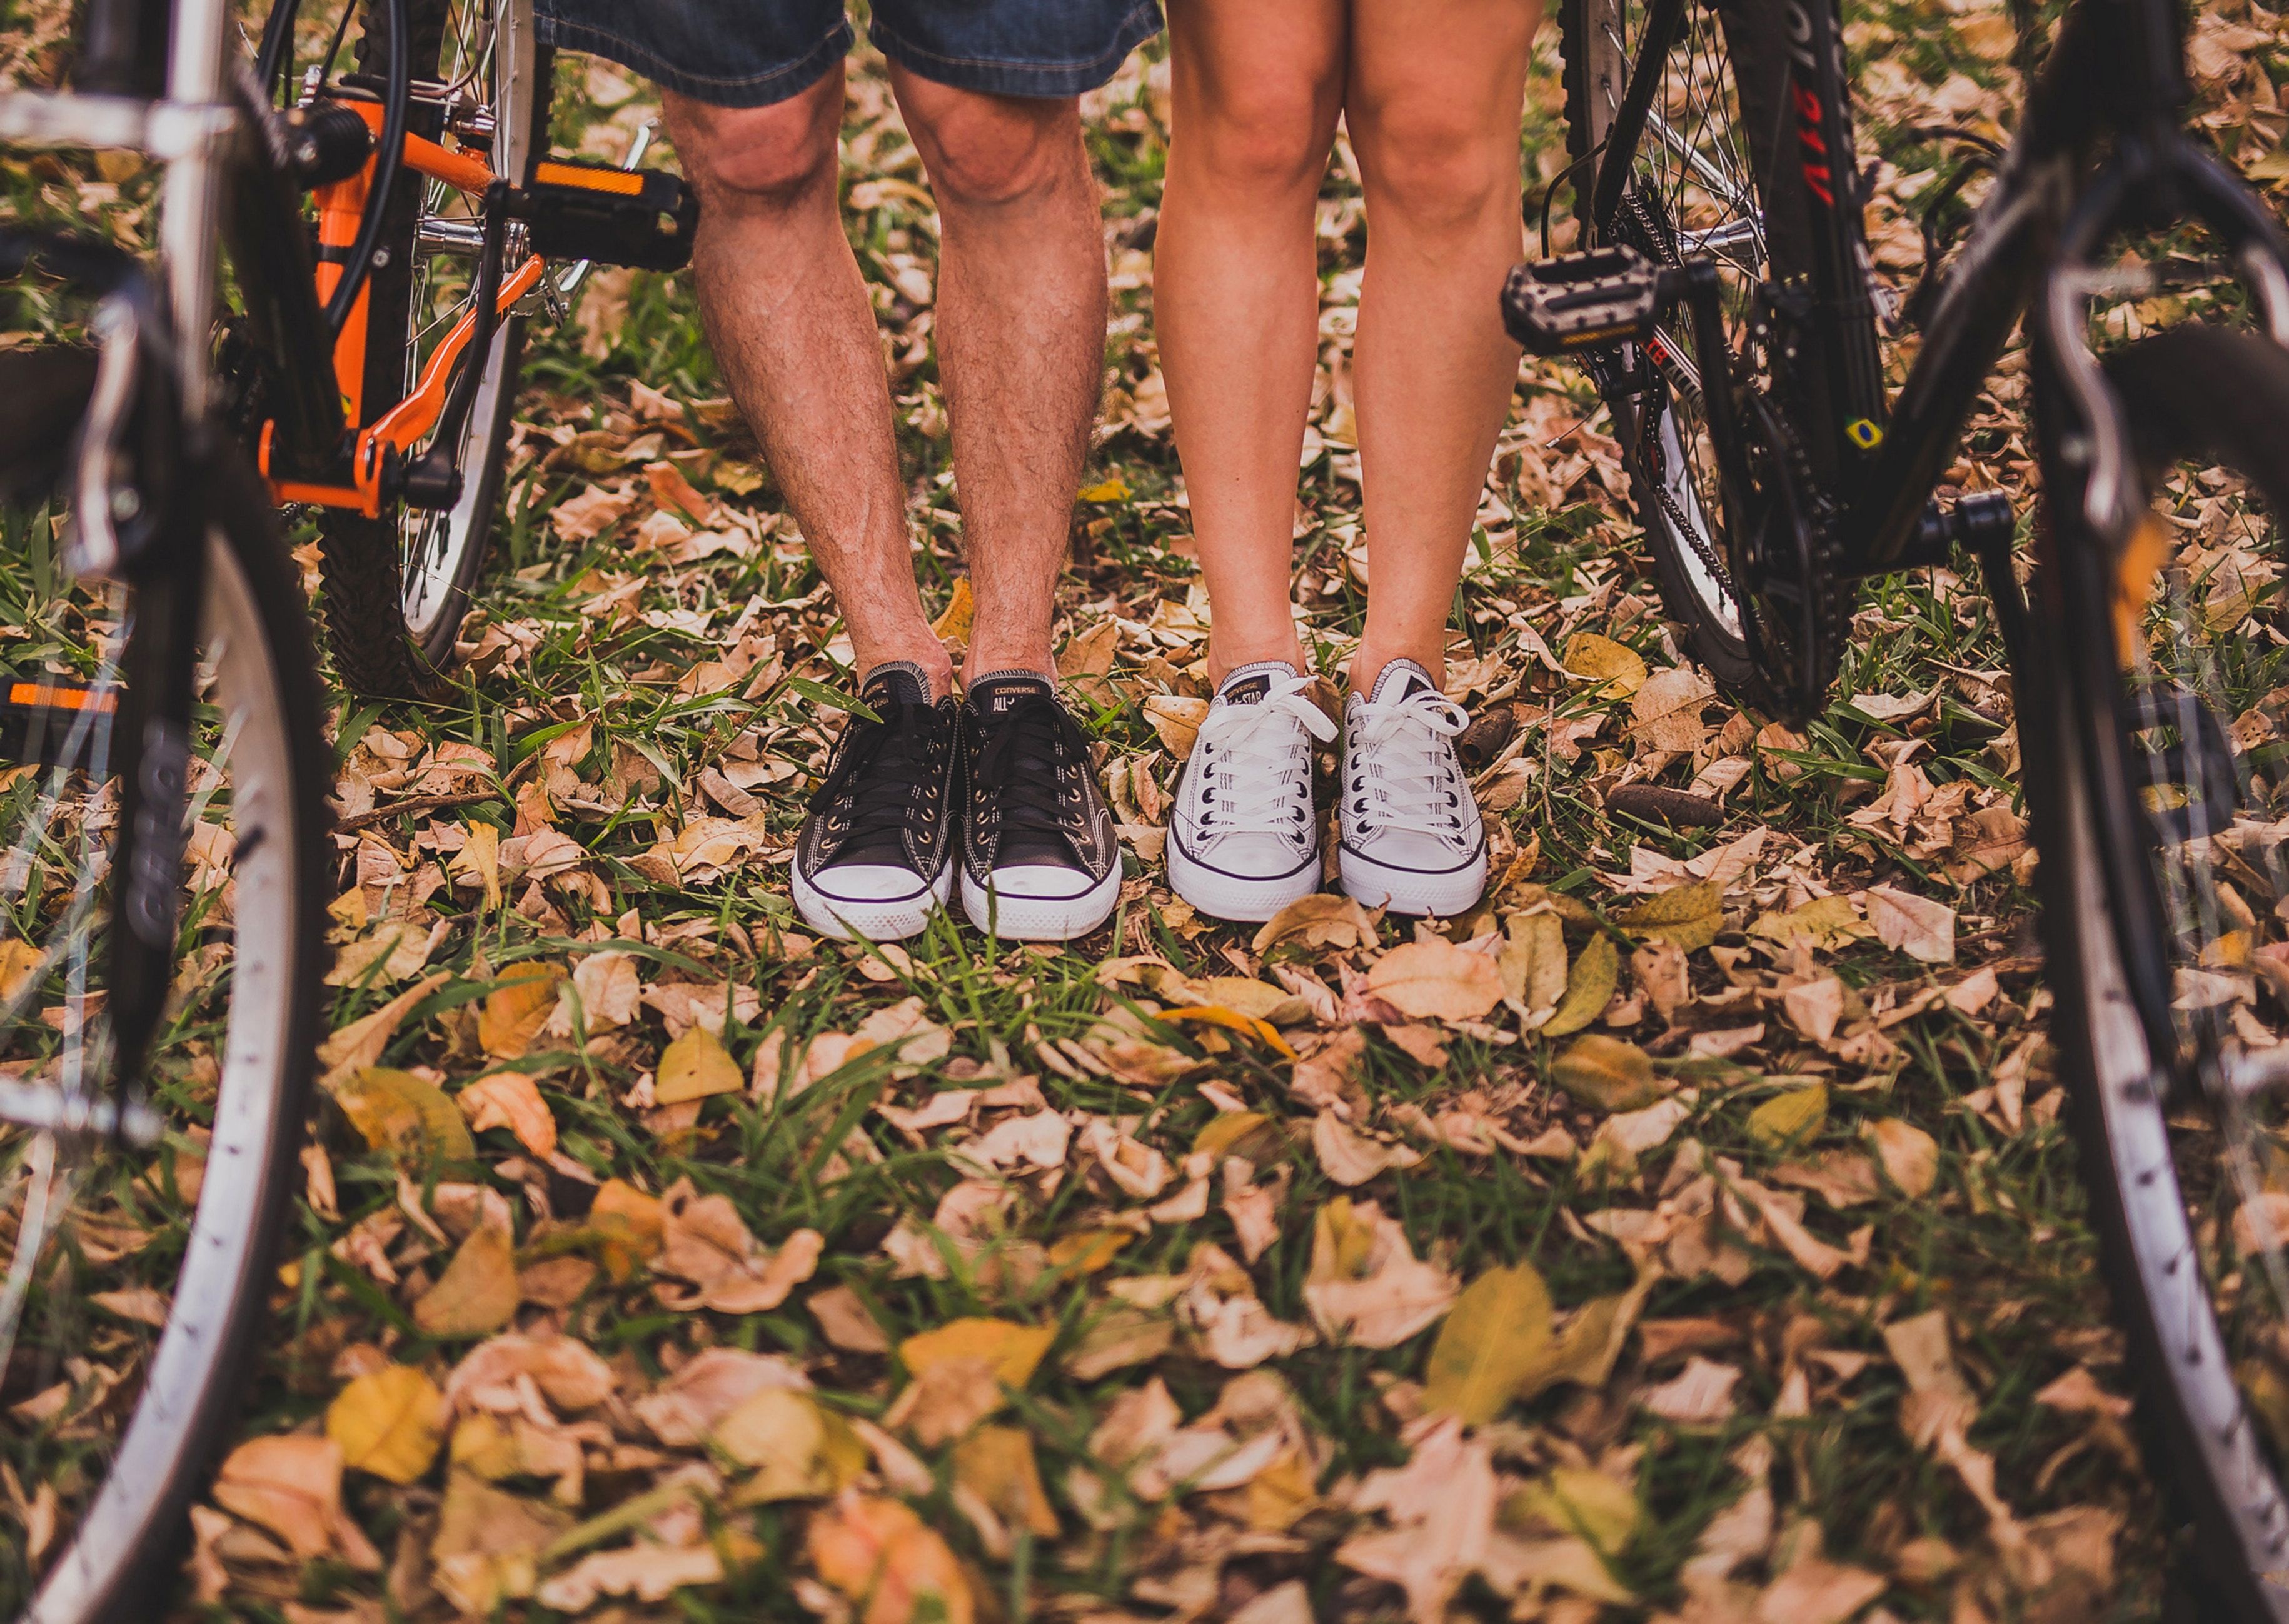 two bicycles and the legs and feet of a man and woman in sneakers